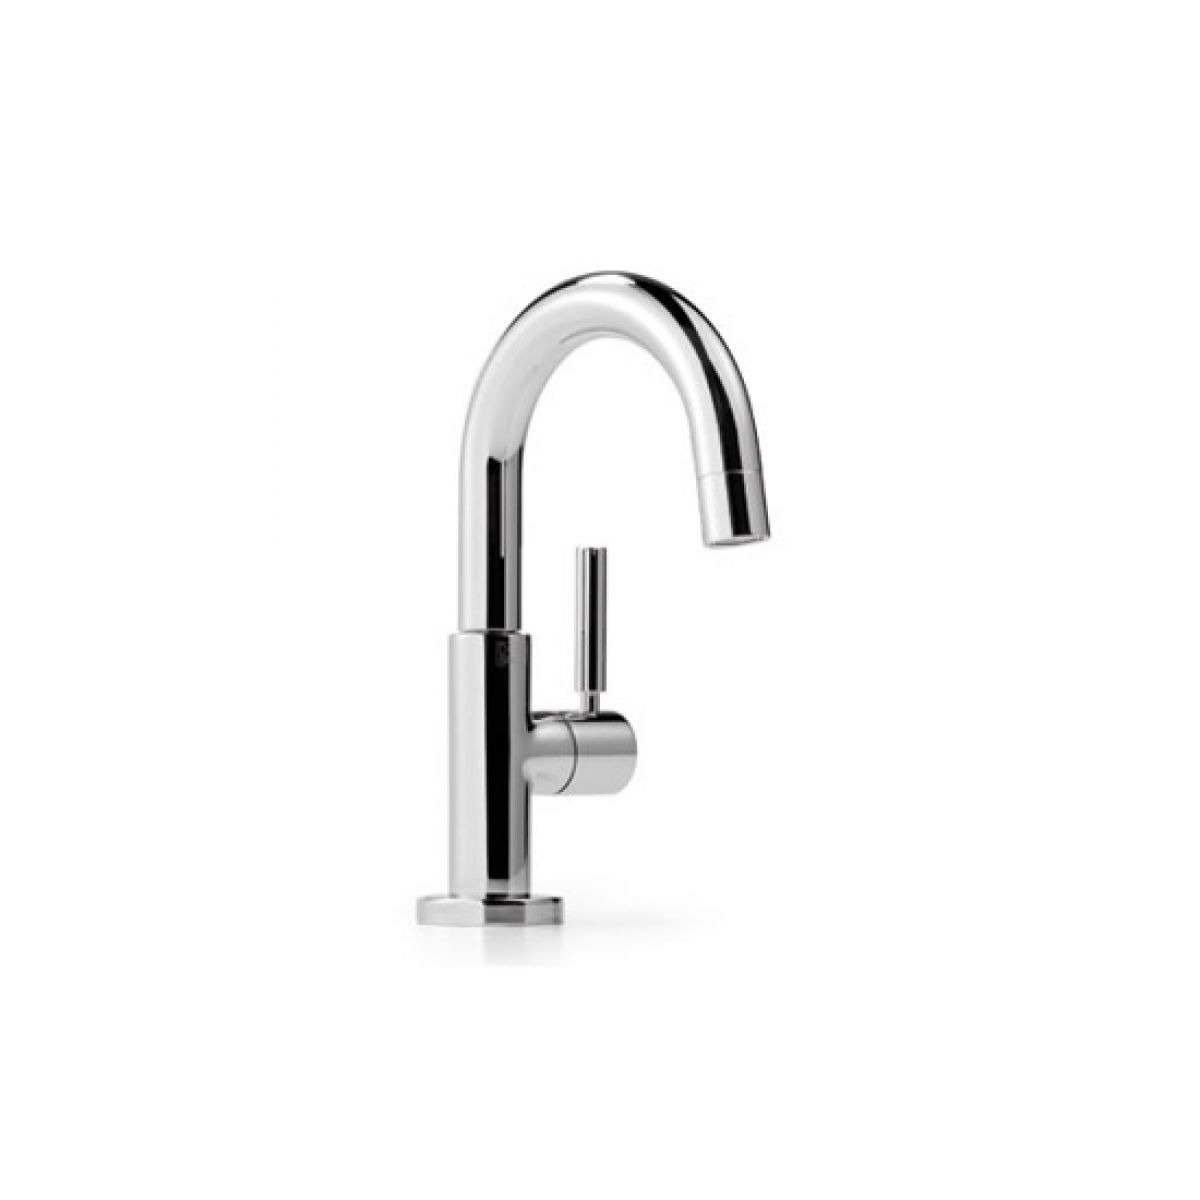 Dornbracht Tara Contemporary Pillar Tap